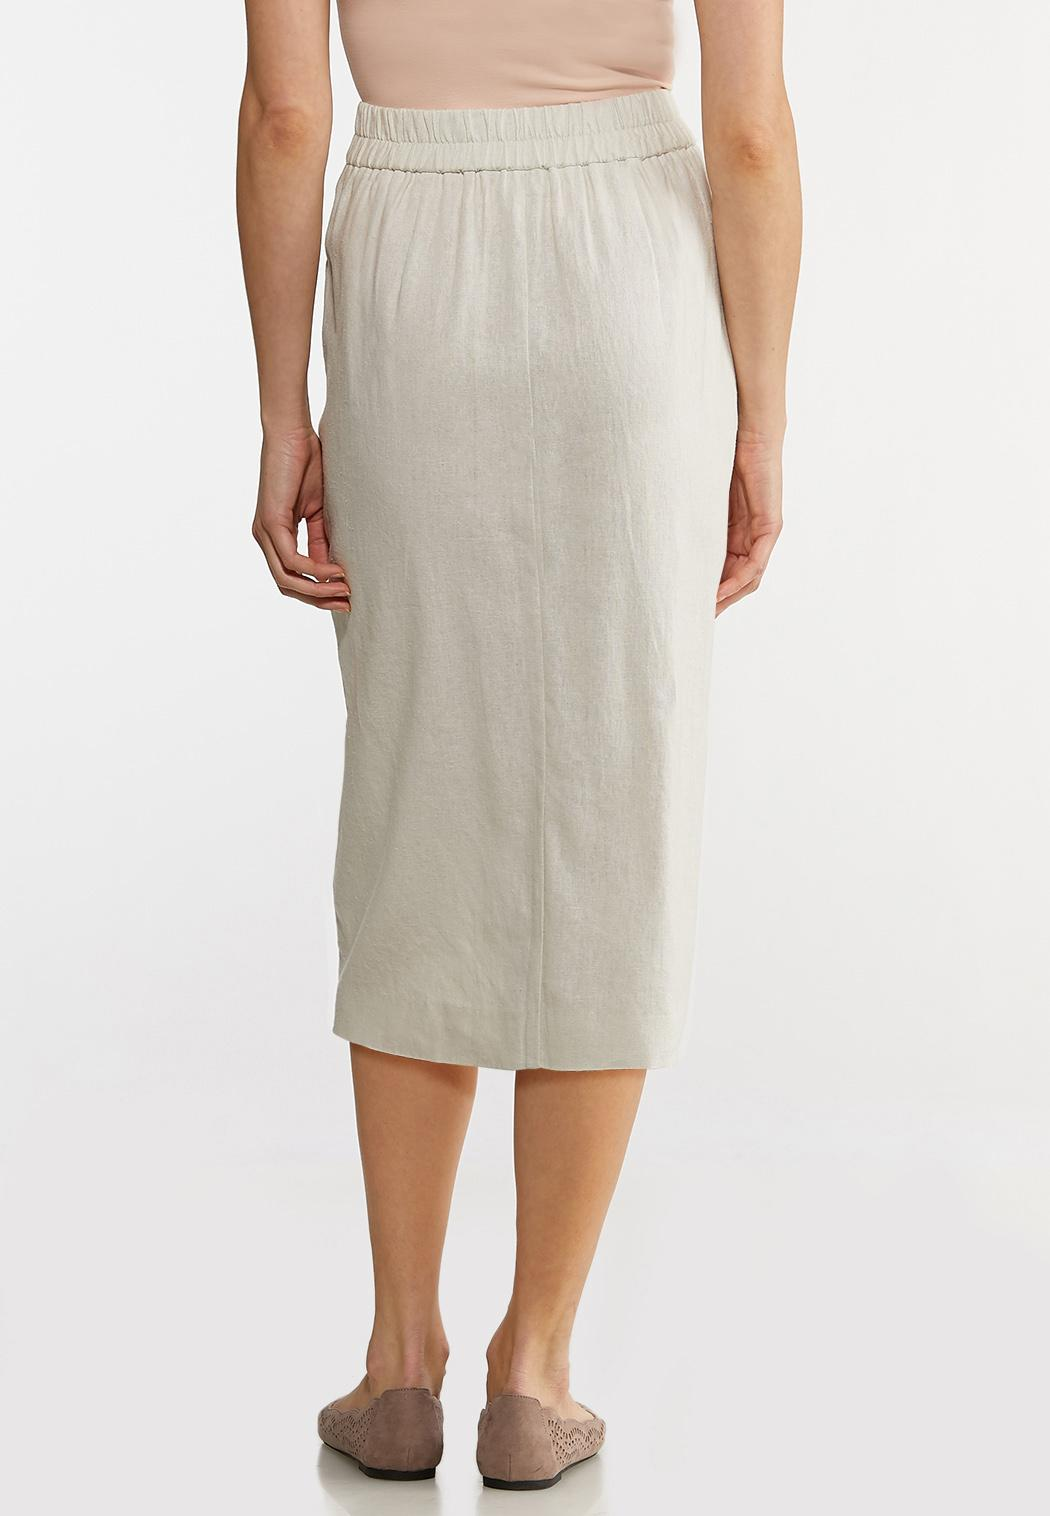 Plus Size Linen Pencil Skirt (Item #44116396)